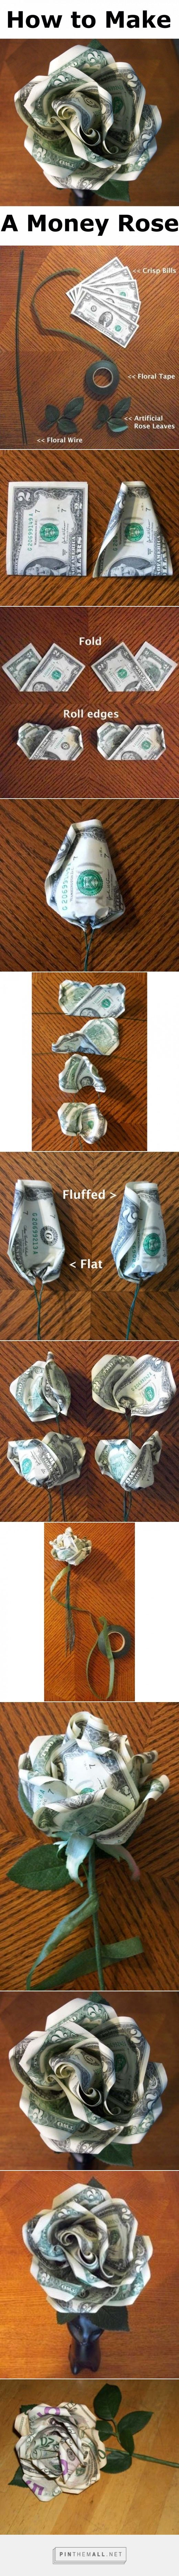 How to make a money rose free pattern pinterest money rose how to make a money rose dhlflorist Choice Image